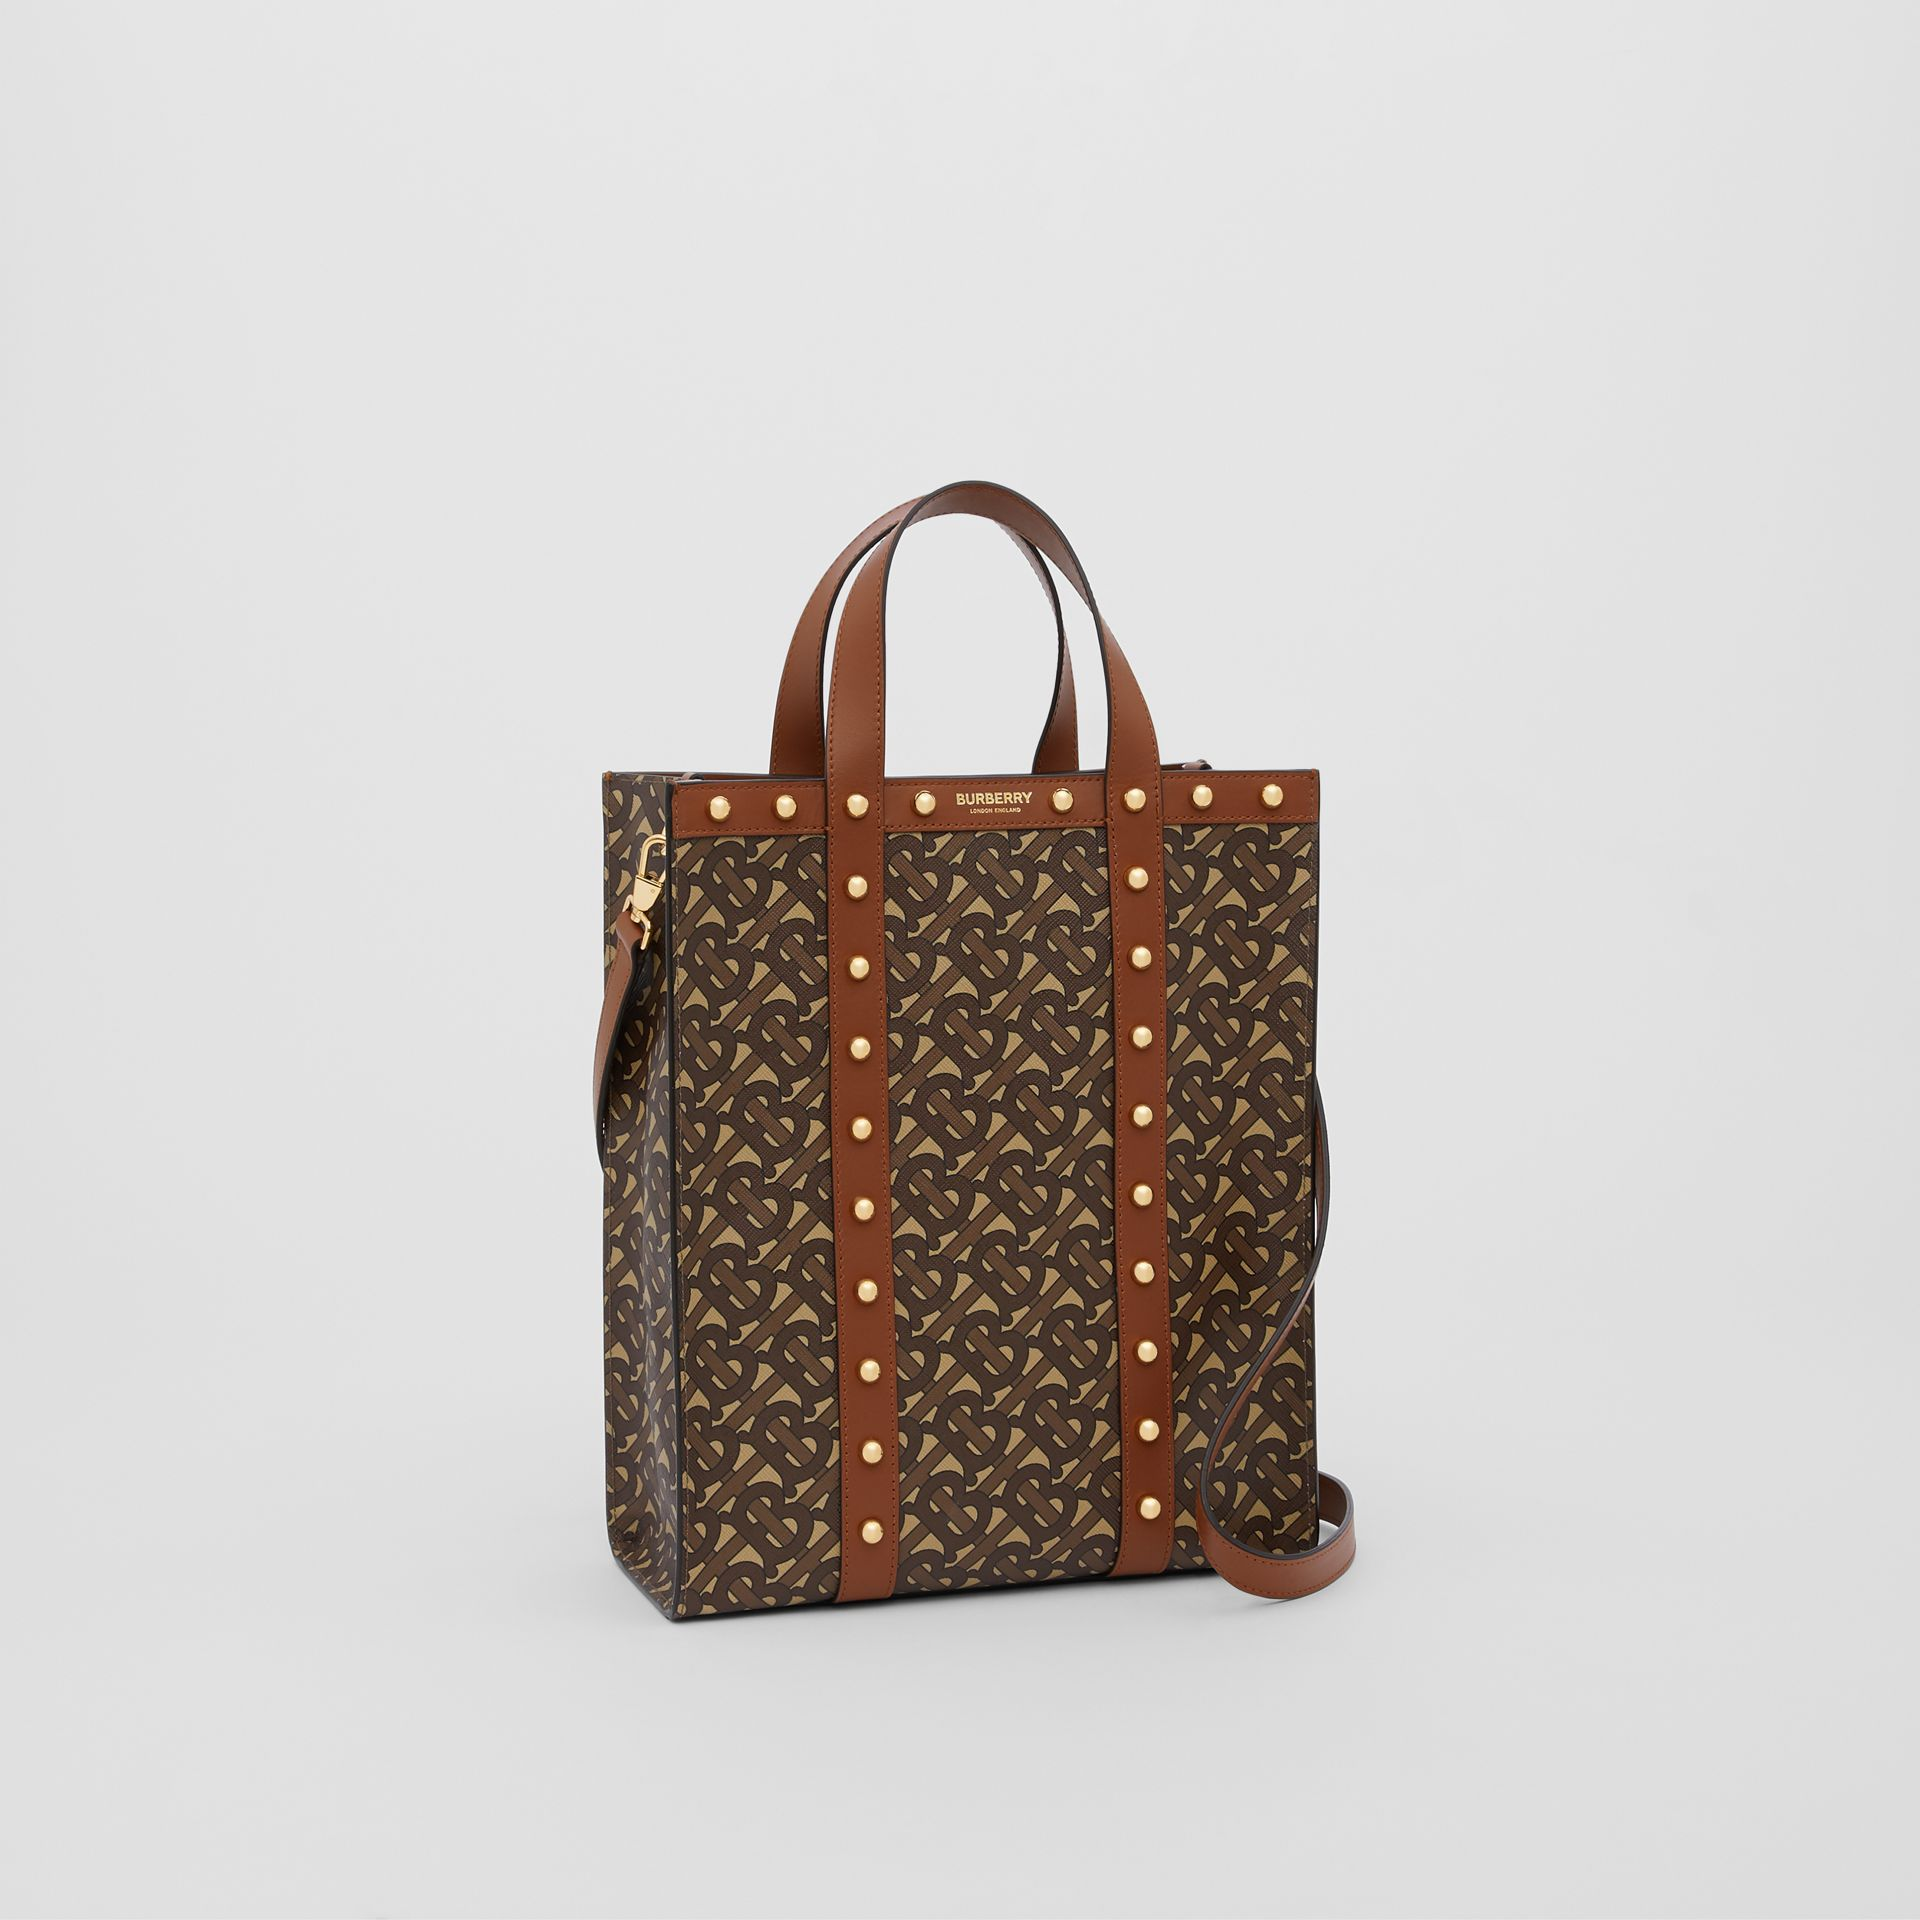 Small Monogram Print E-canvas Portrait Tote Bag in Tan - Women | Burberry - gallery image 8